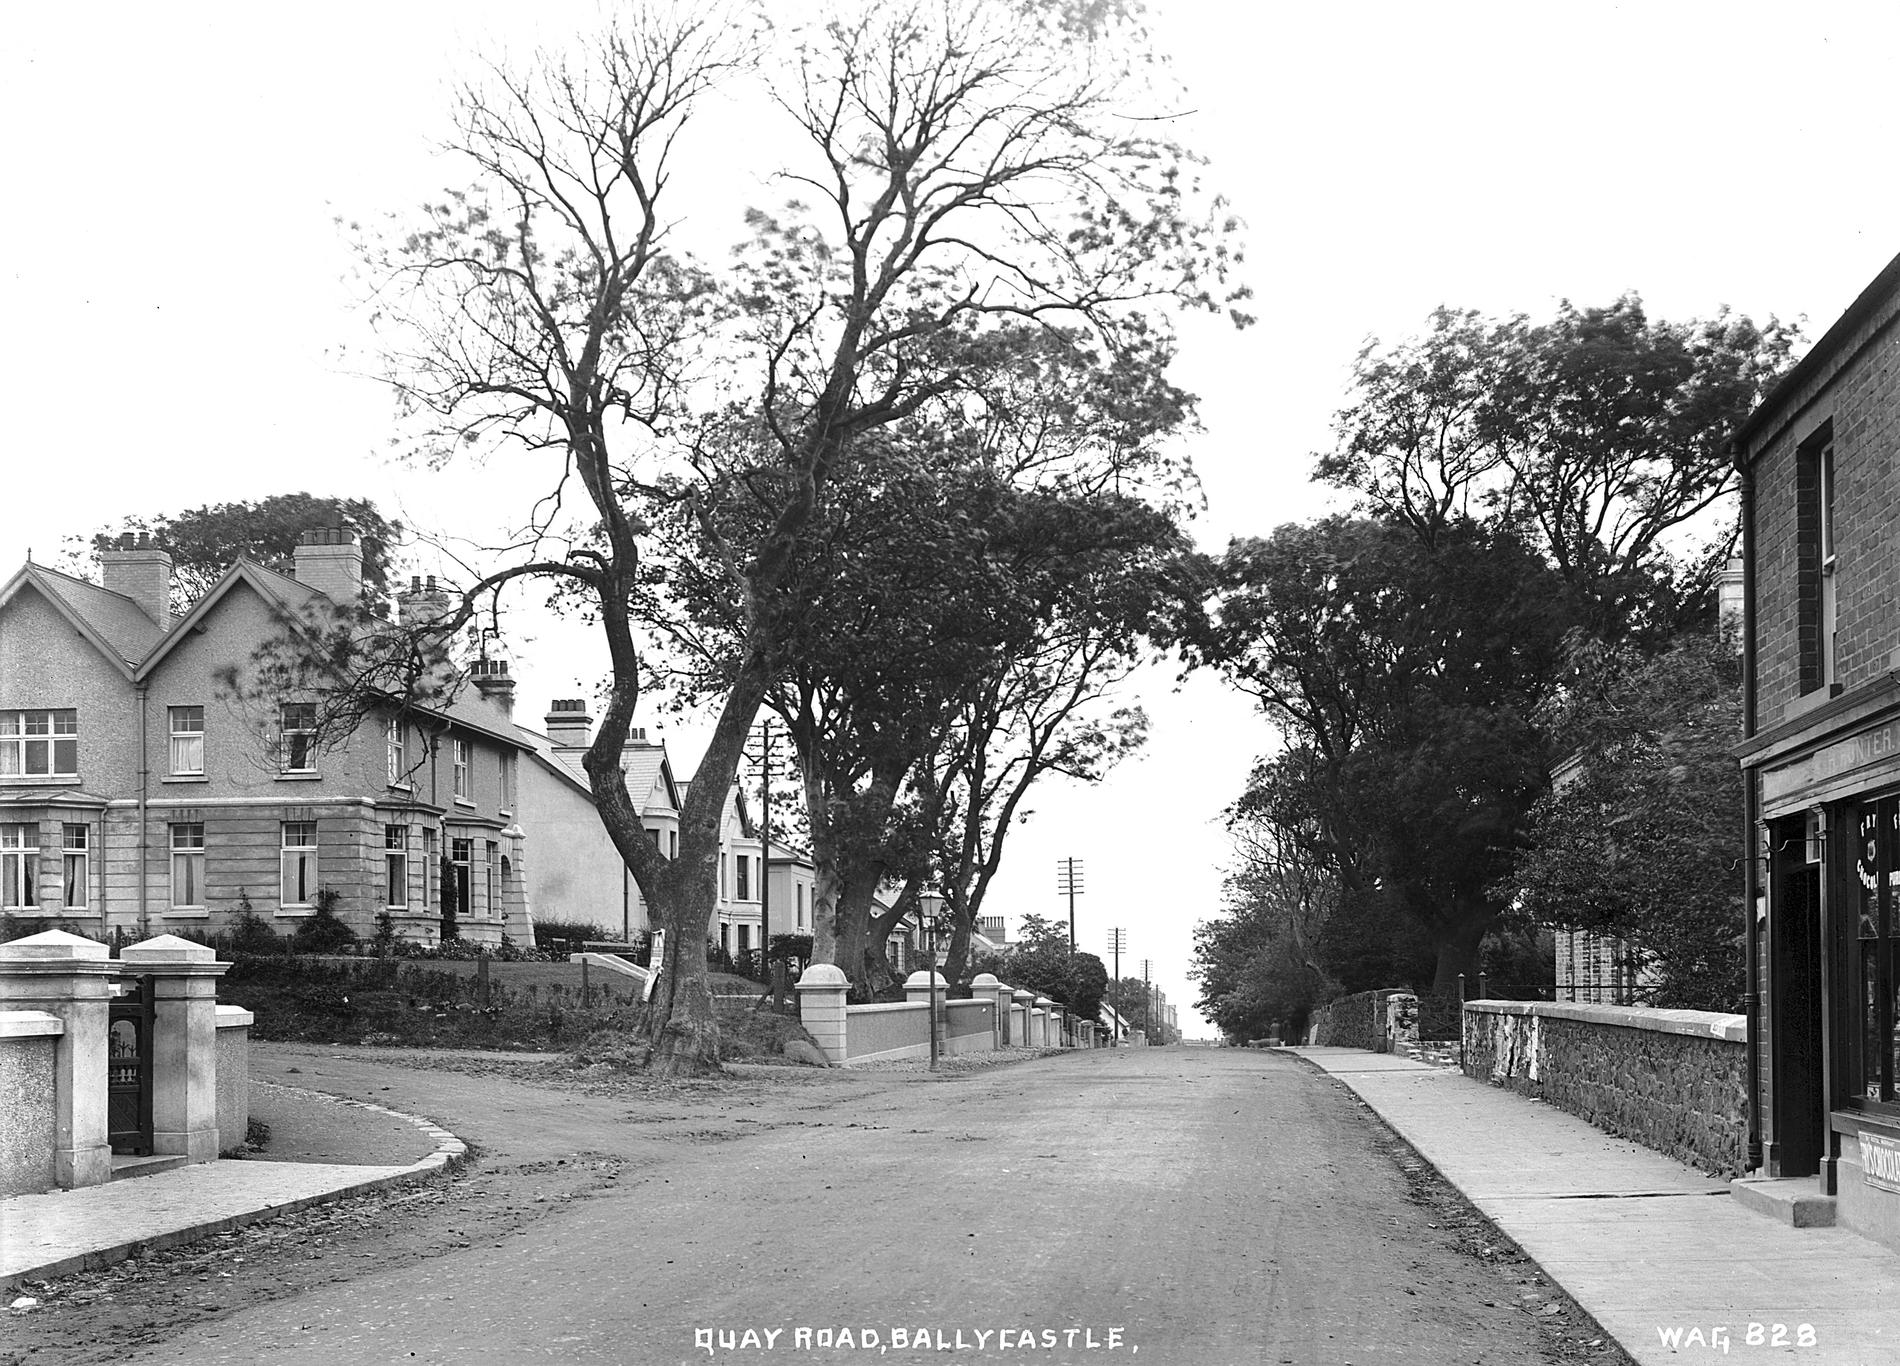 QUAY ROAD, BALLYCASTLE (Photograph; glass plate negative)